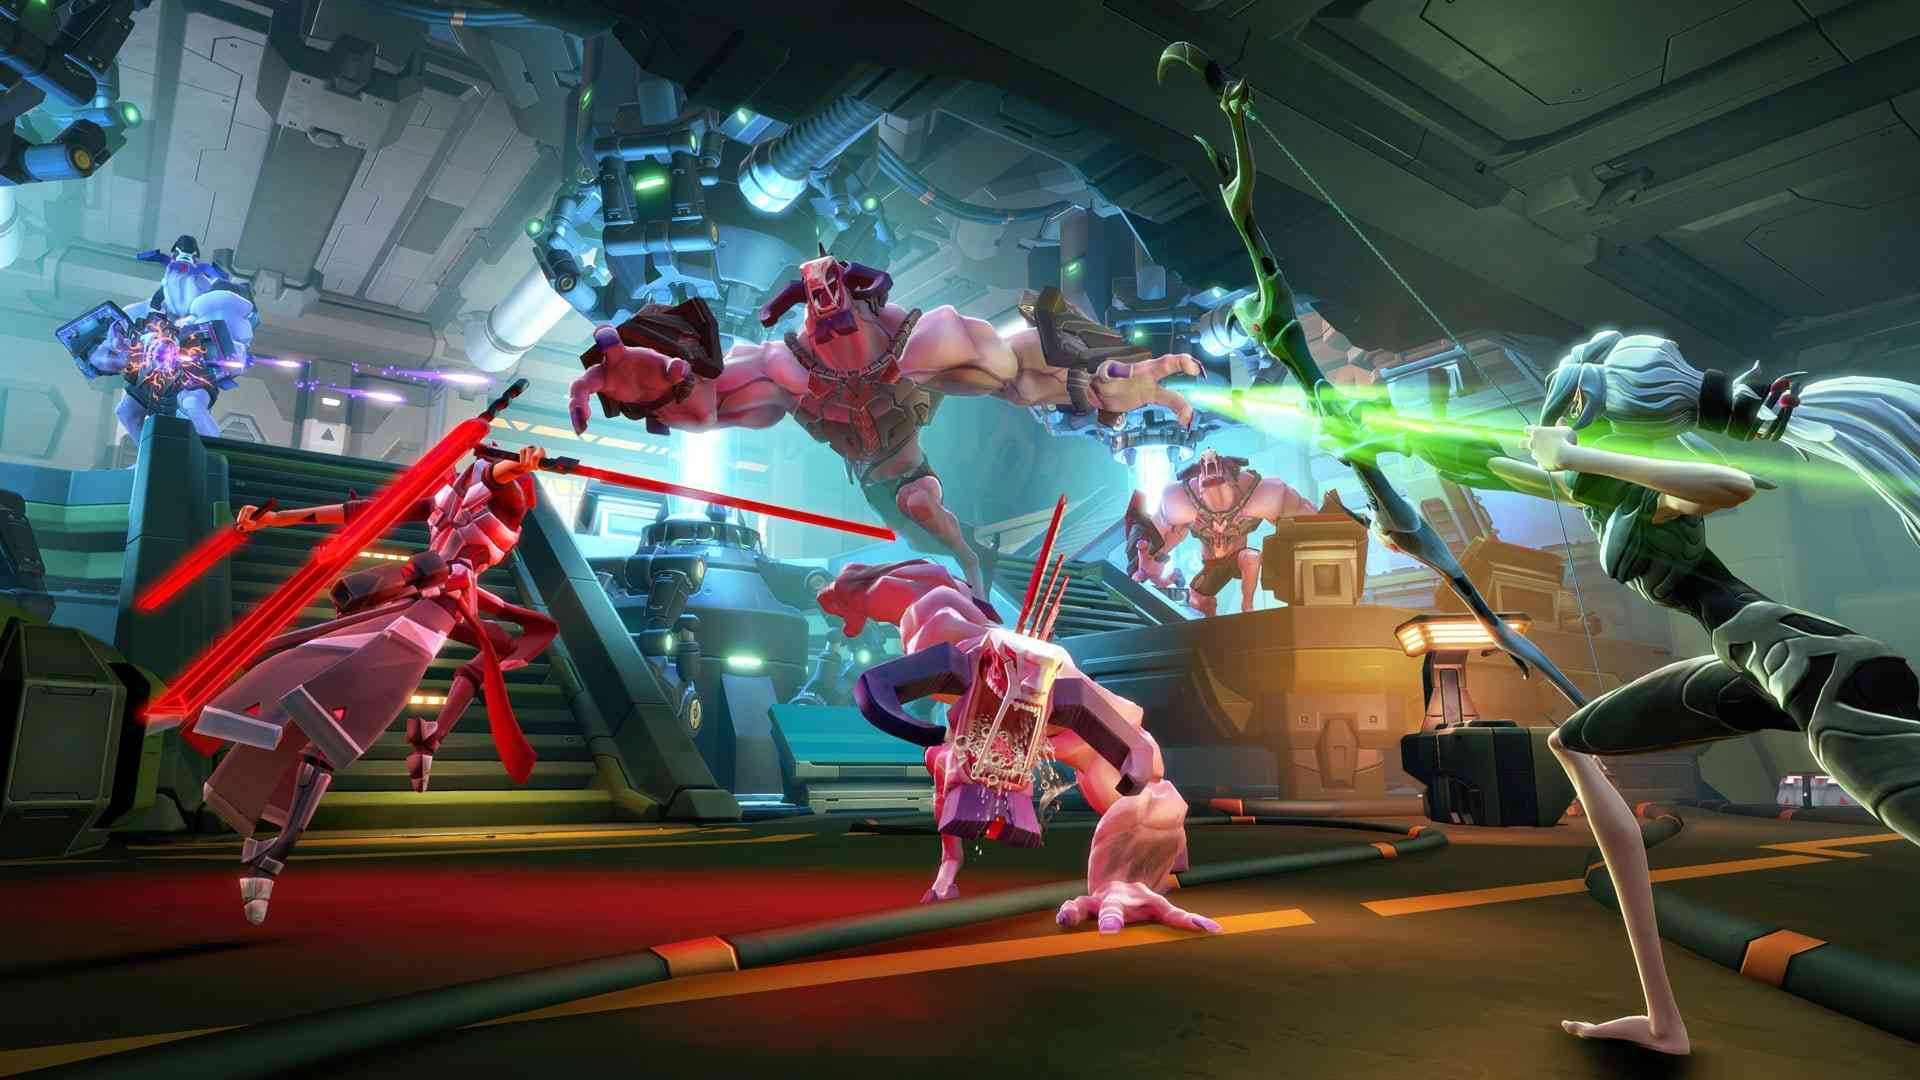 2K and Gearbox Unveil New Battleborn Game Features, Including a Hardcore Mode